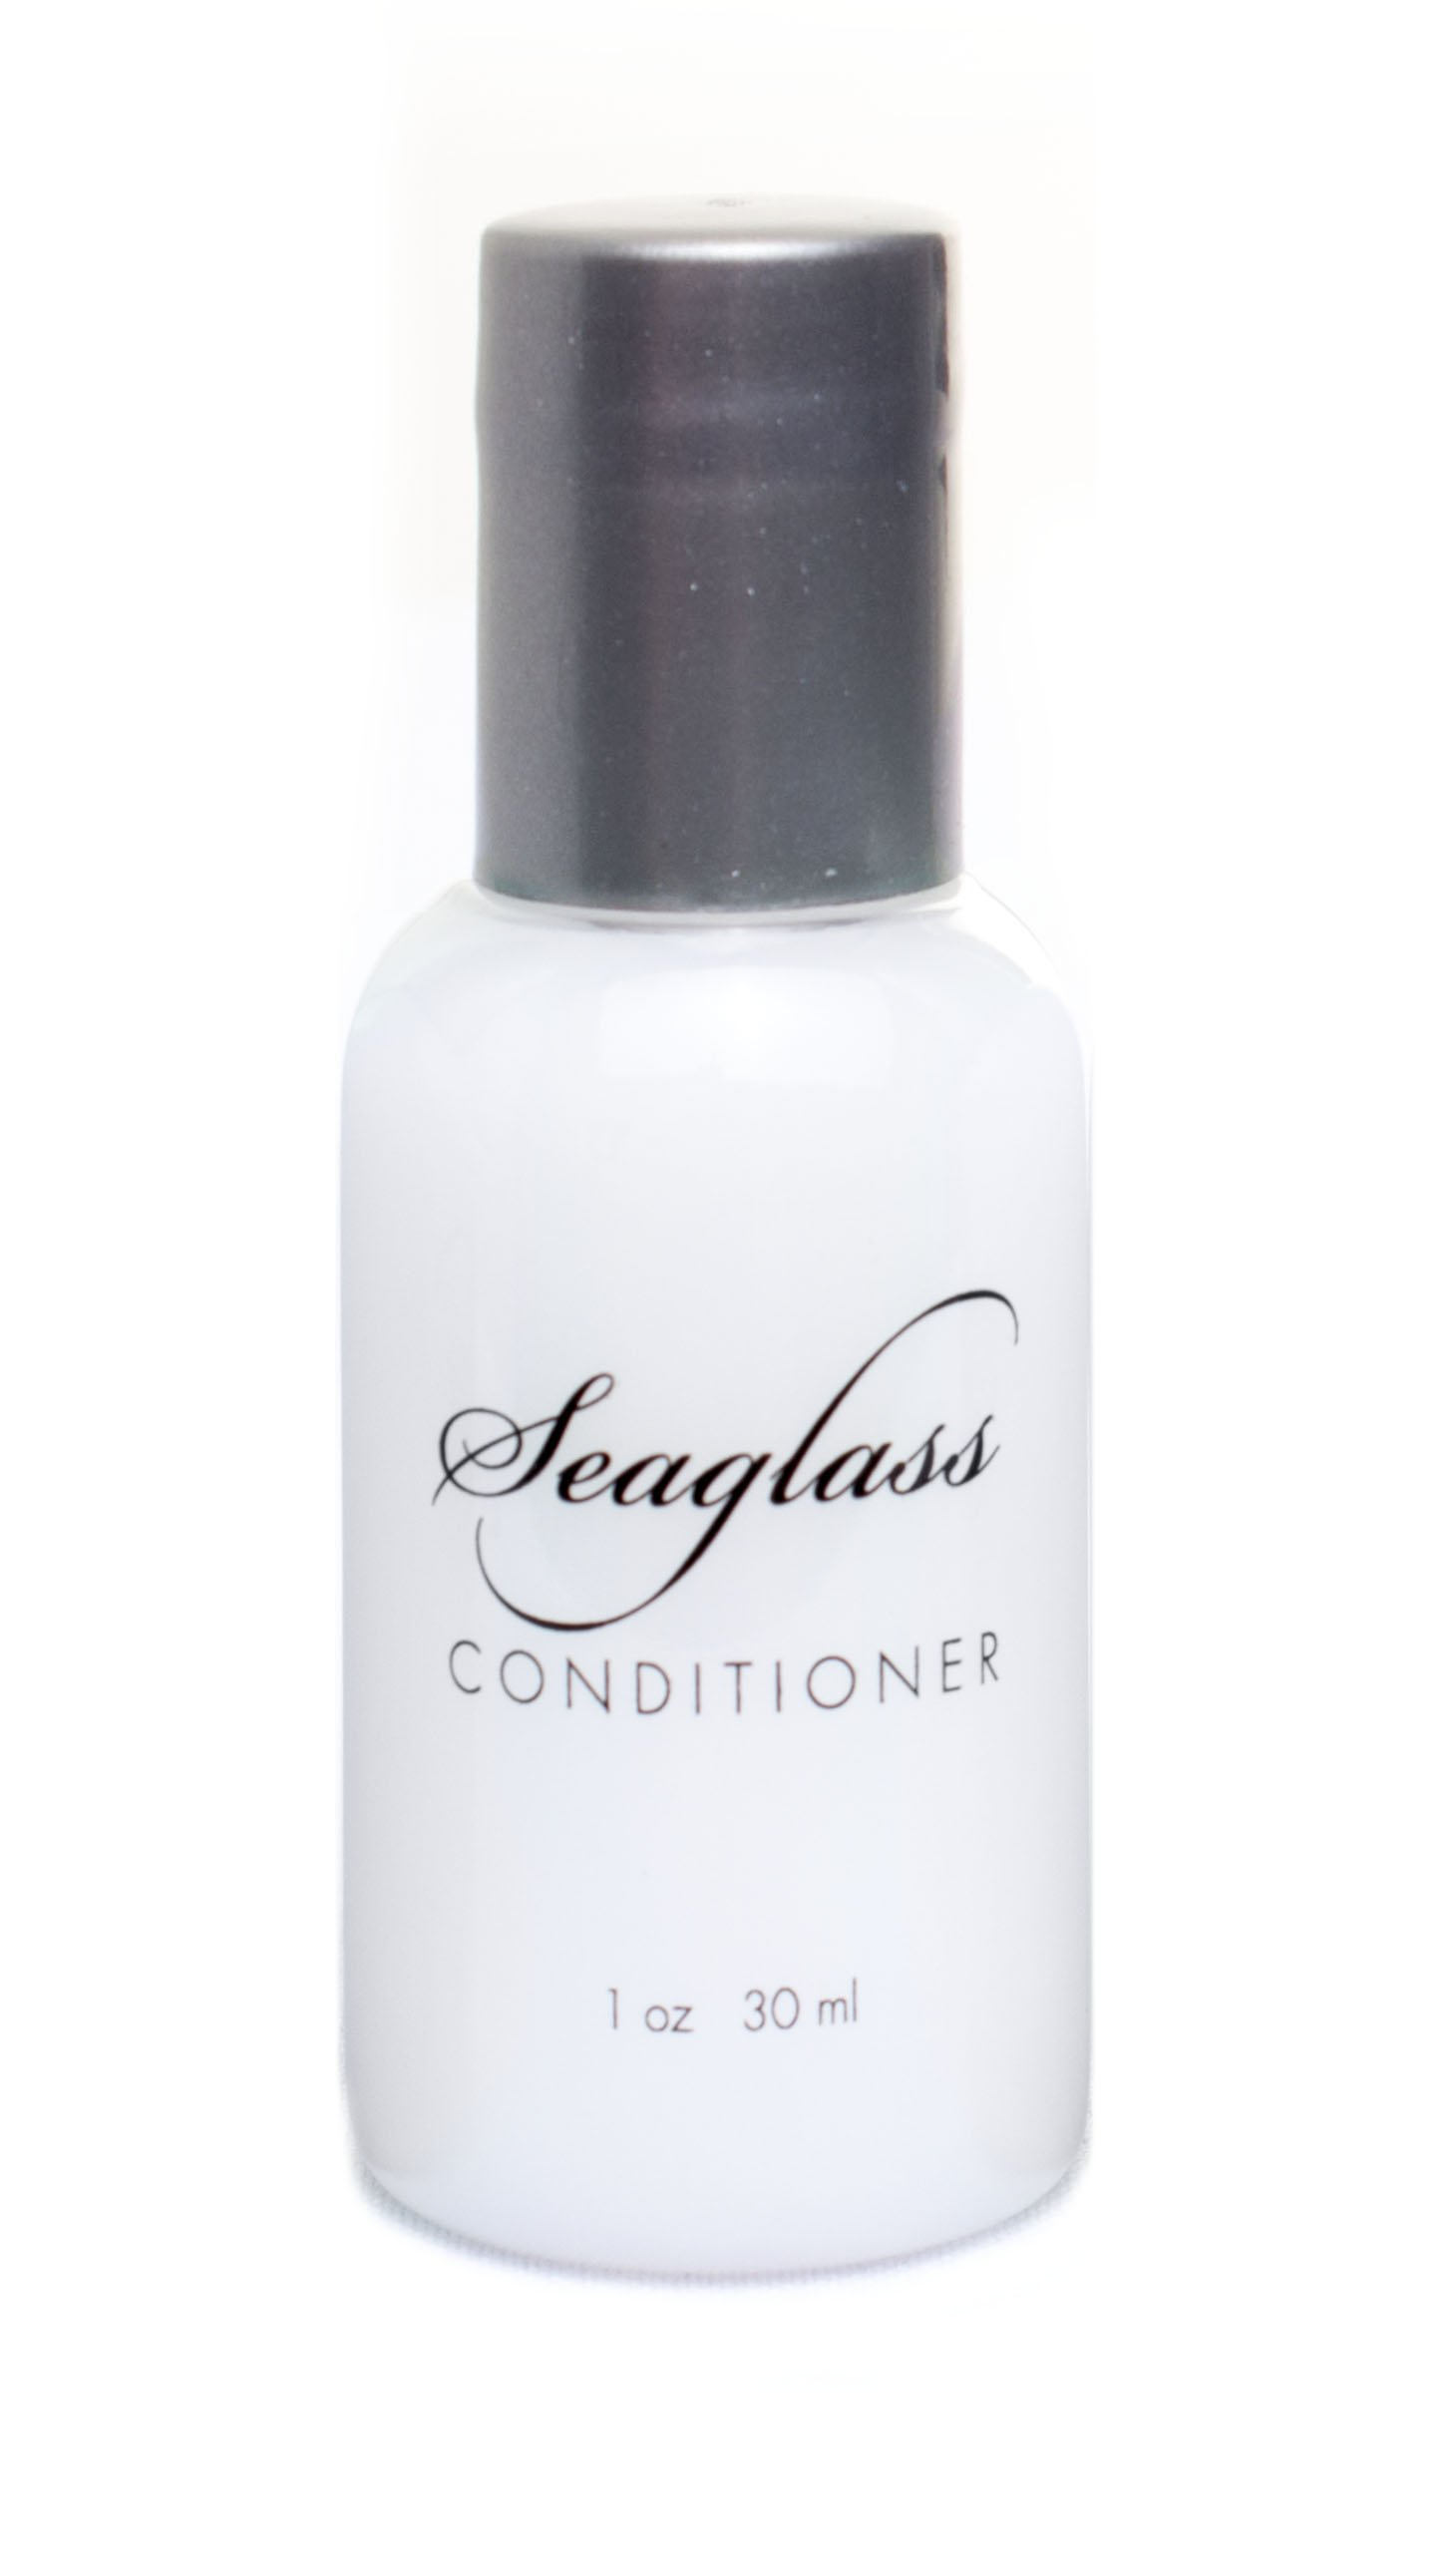 Soul Amenities Seaglass Shimmer Conditioner Transparent Bottle Silver Screw Cap 1.0 oz Individually Wrapped 200 per case